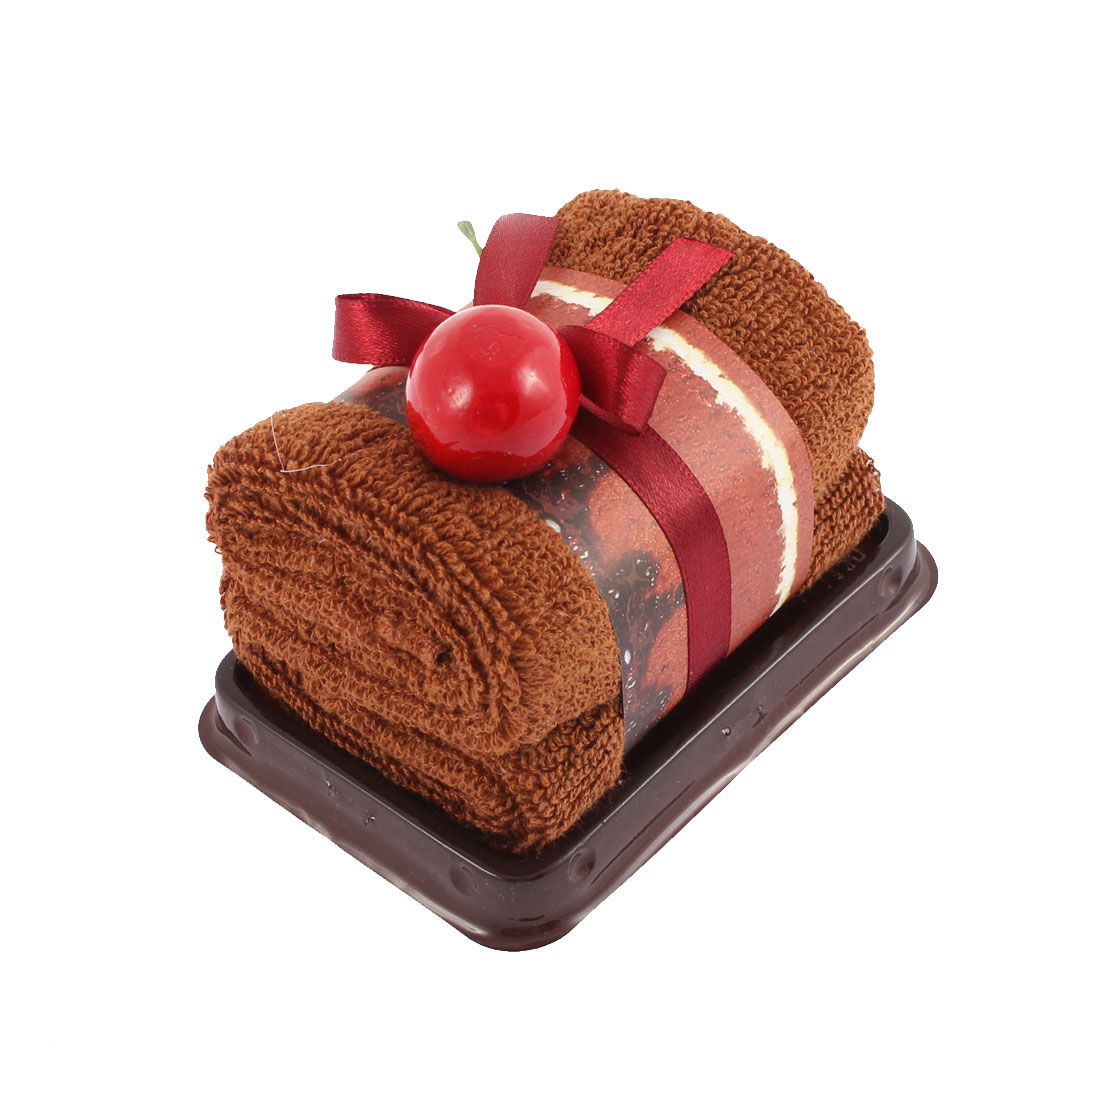 Rectangle Cake Design Fruit Decor Wedding Party Gift Washcloth Hand Towel Brown